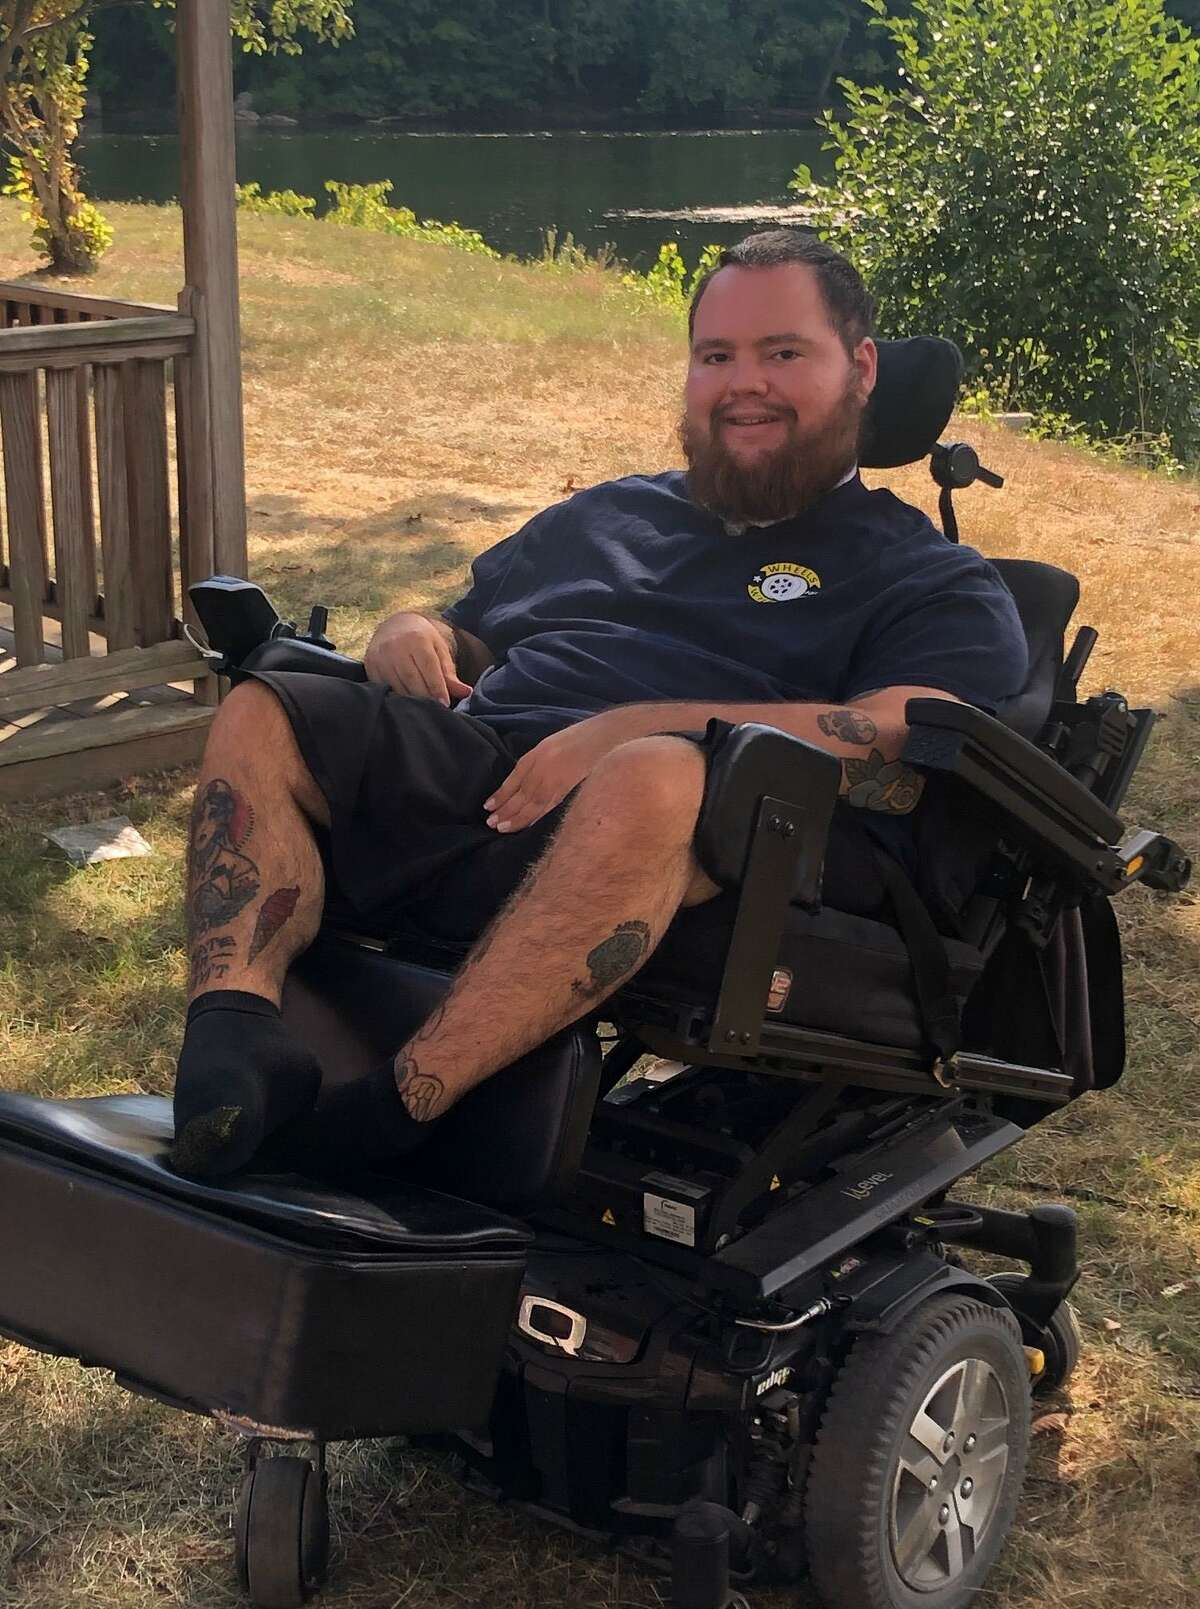 Sean Quigg of New Milford founded and is the director of the non-profit Wheels for Wheels.